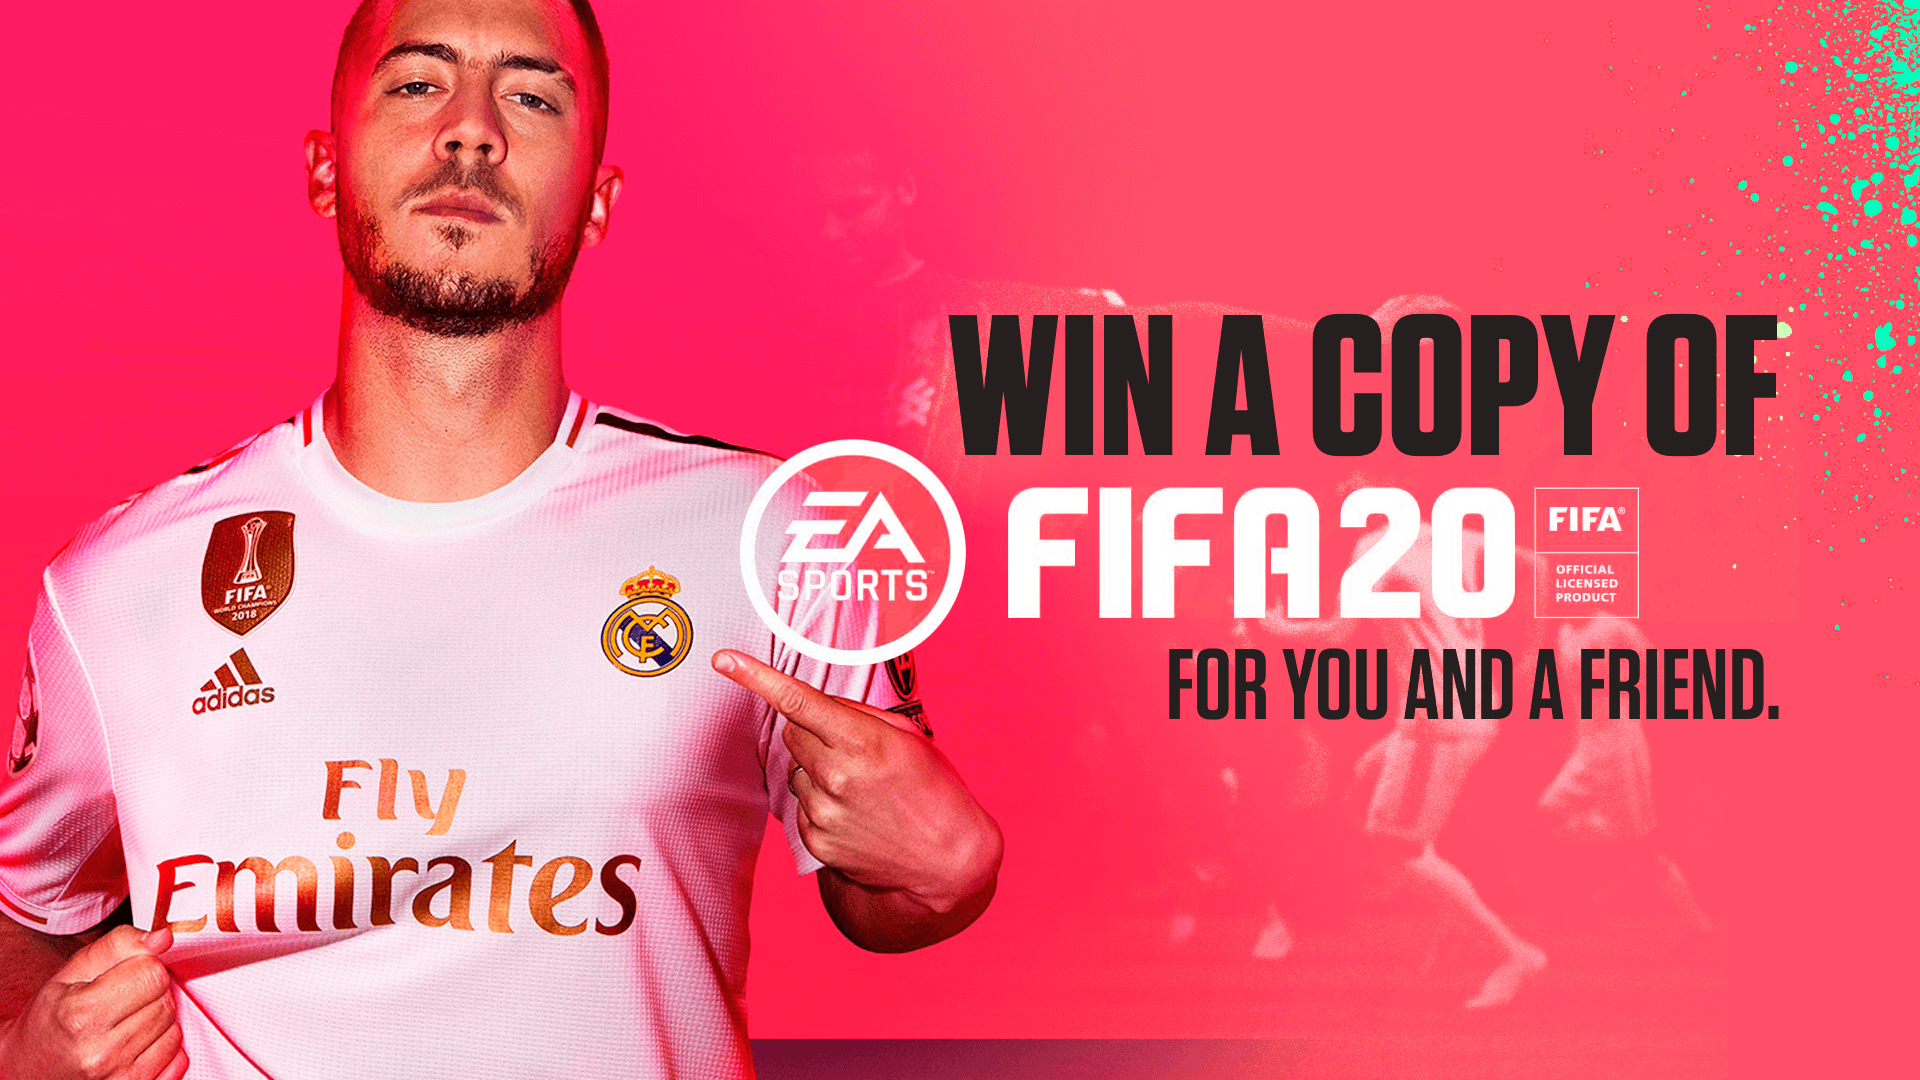 🎮 Win FIFA 20 for you and a friend!